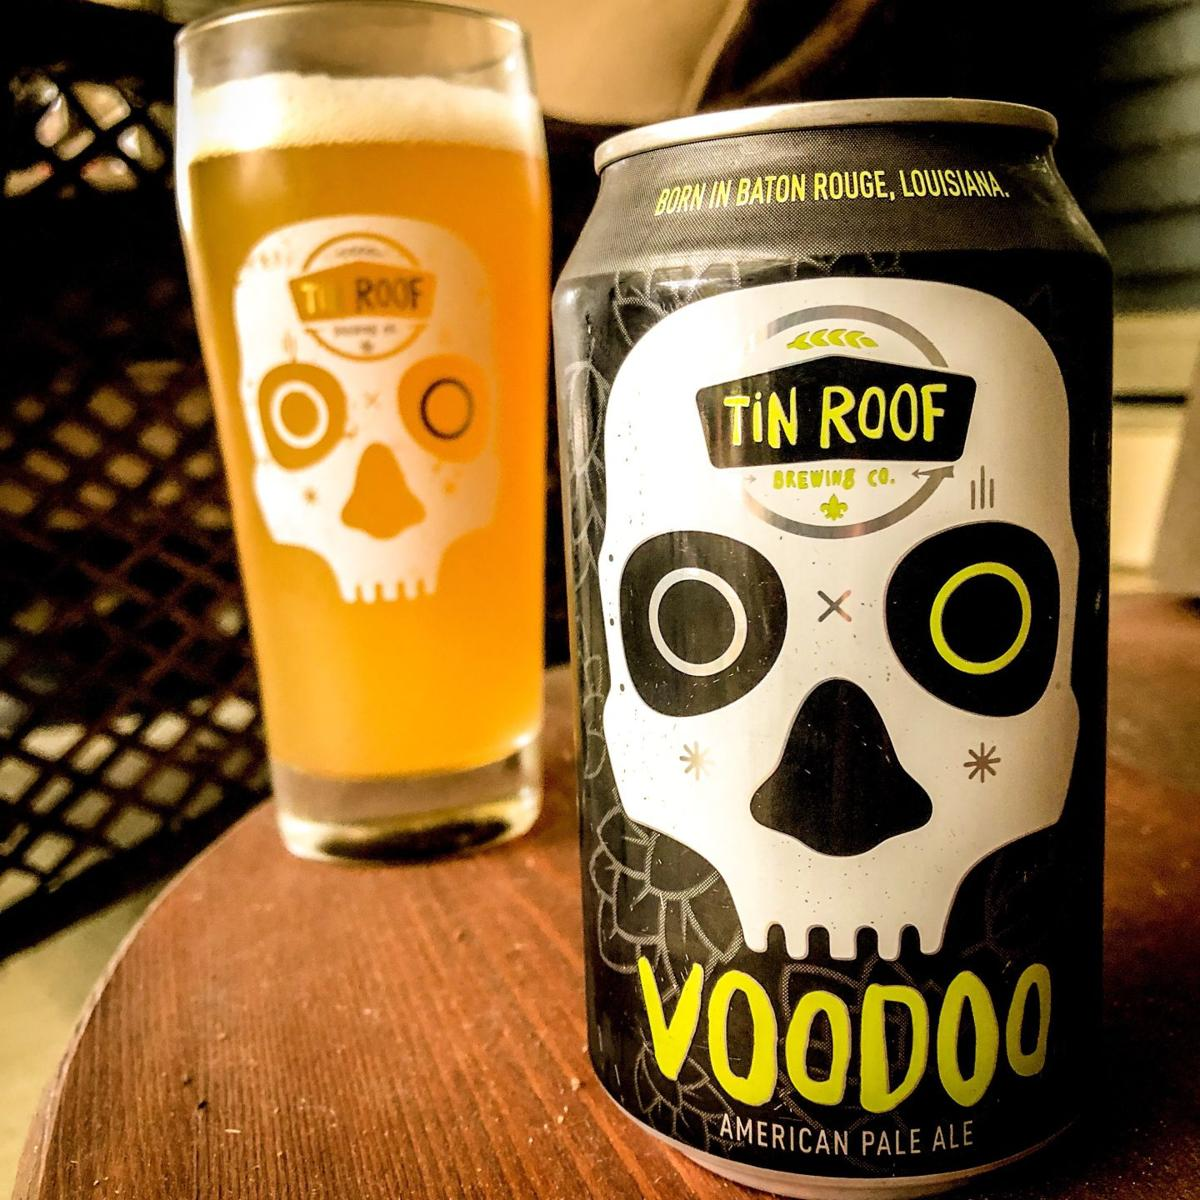 Tin Roof Brewing Wins Great American Beer Festival Gold